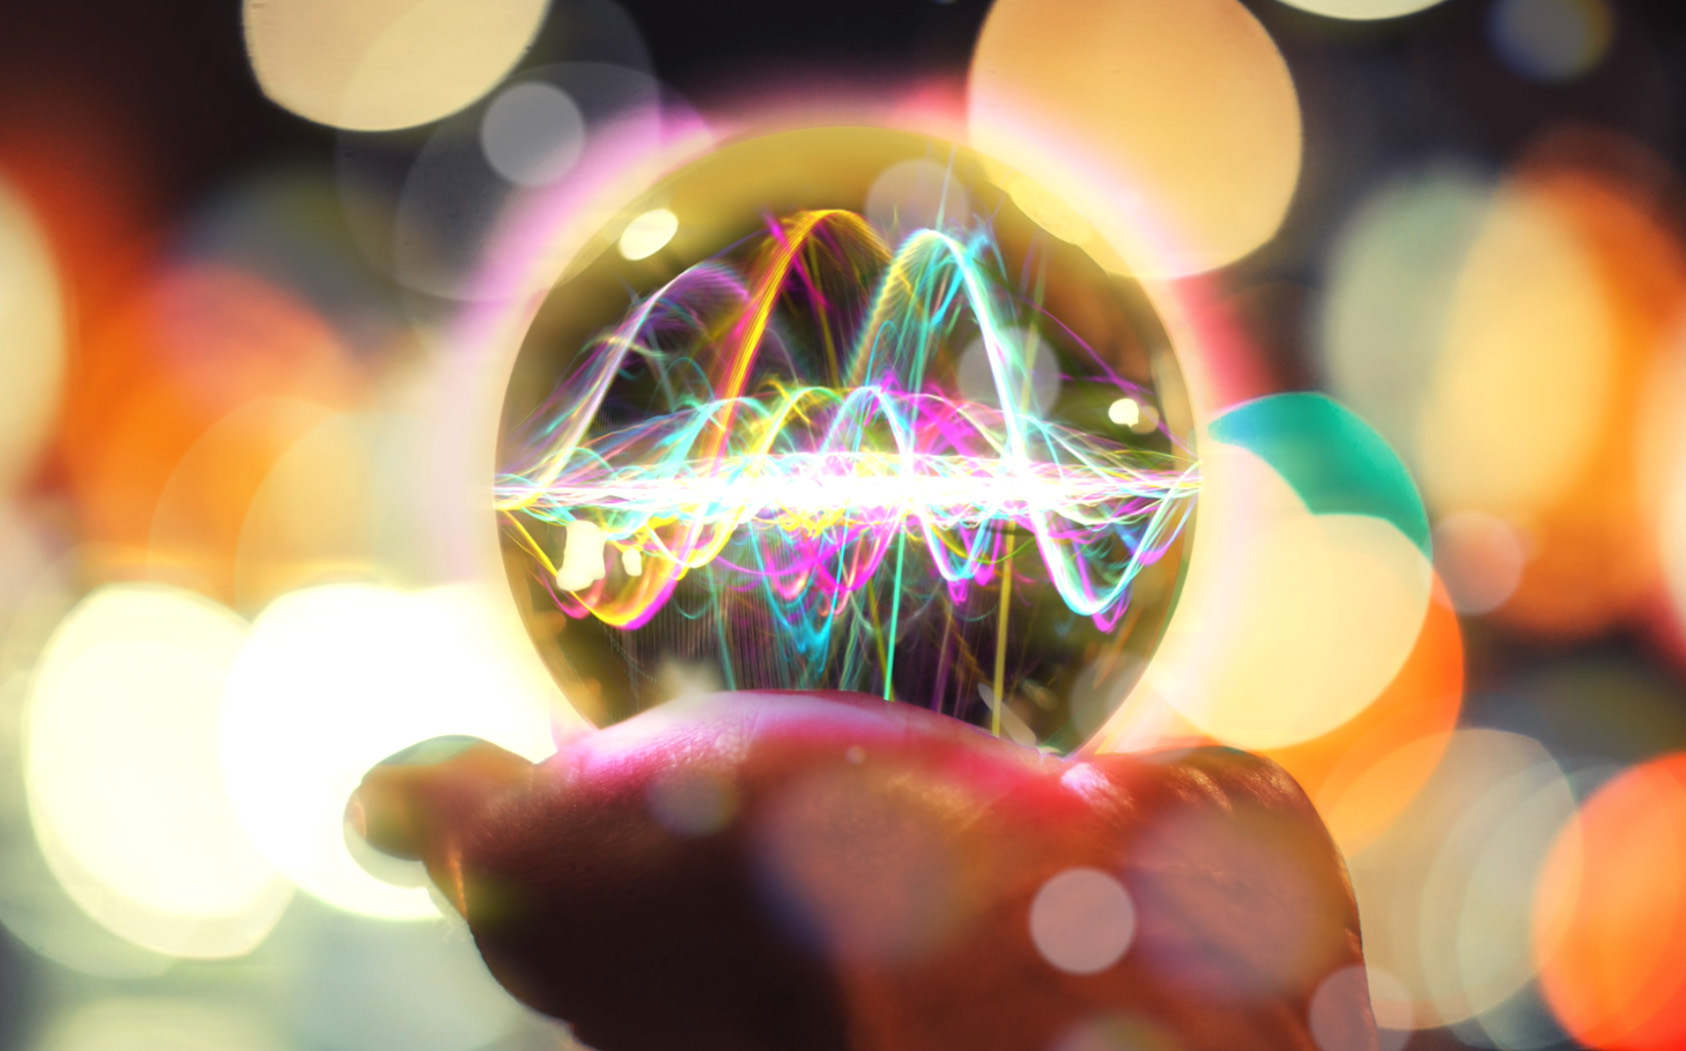 Image of a woman holding a crystal ball with sound waves visible